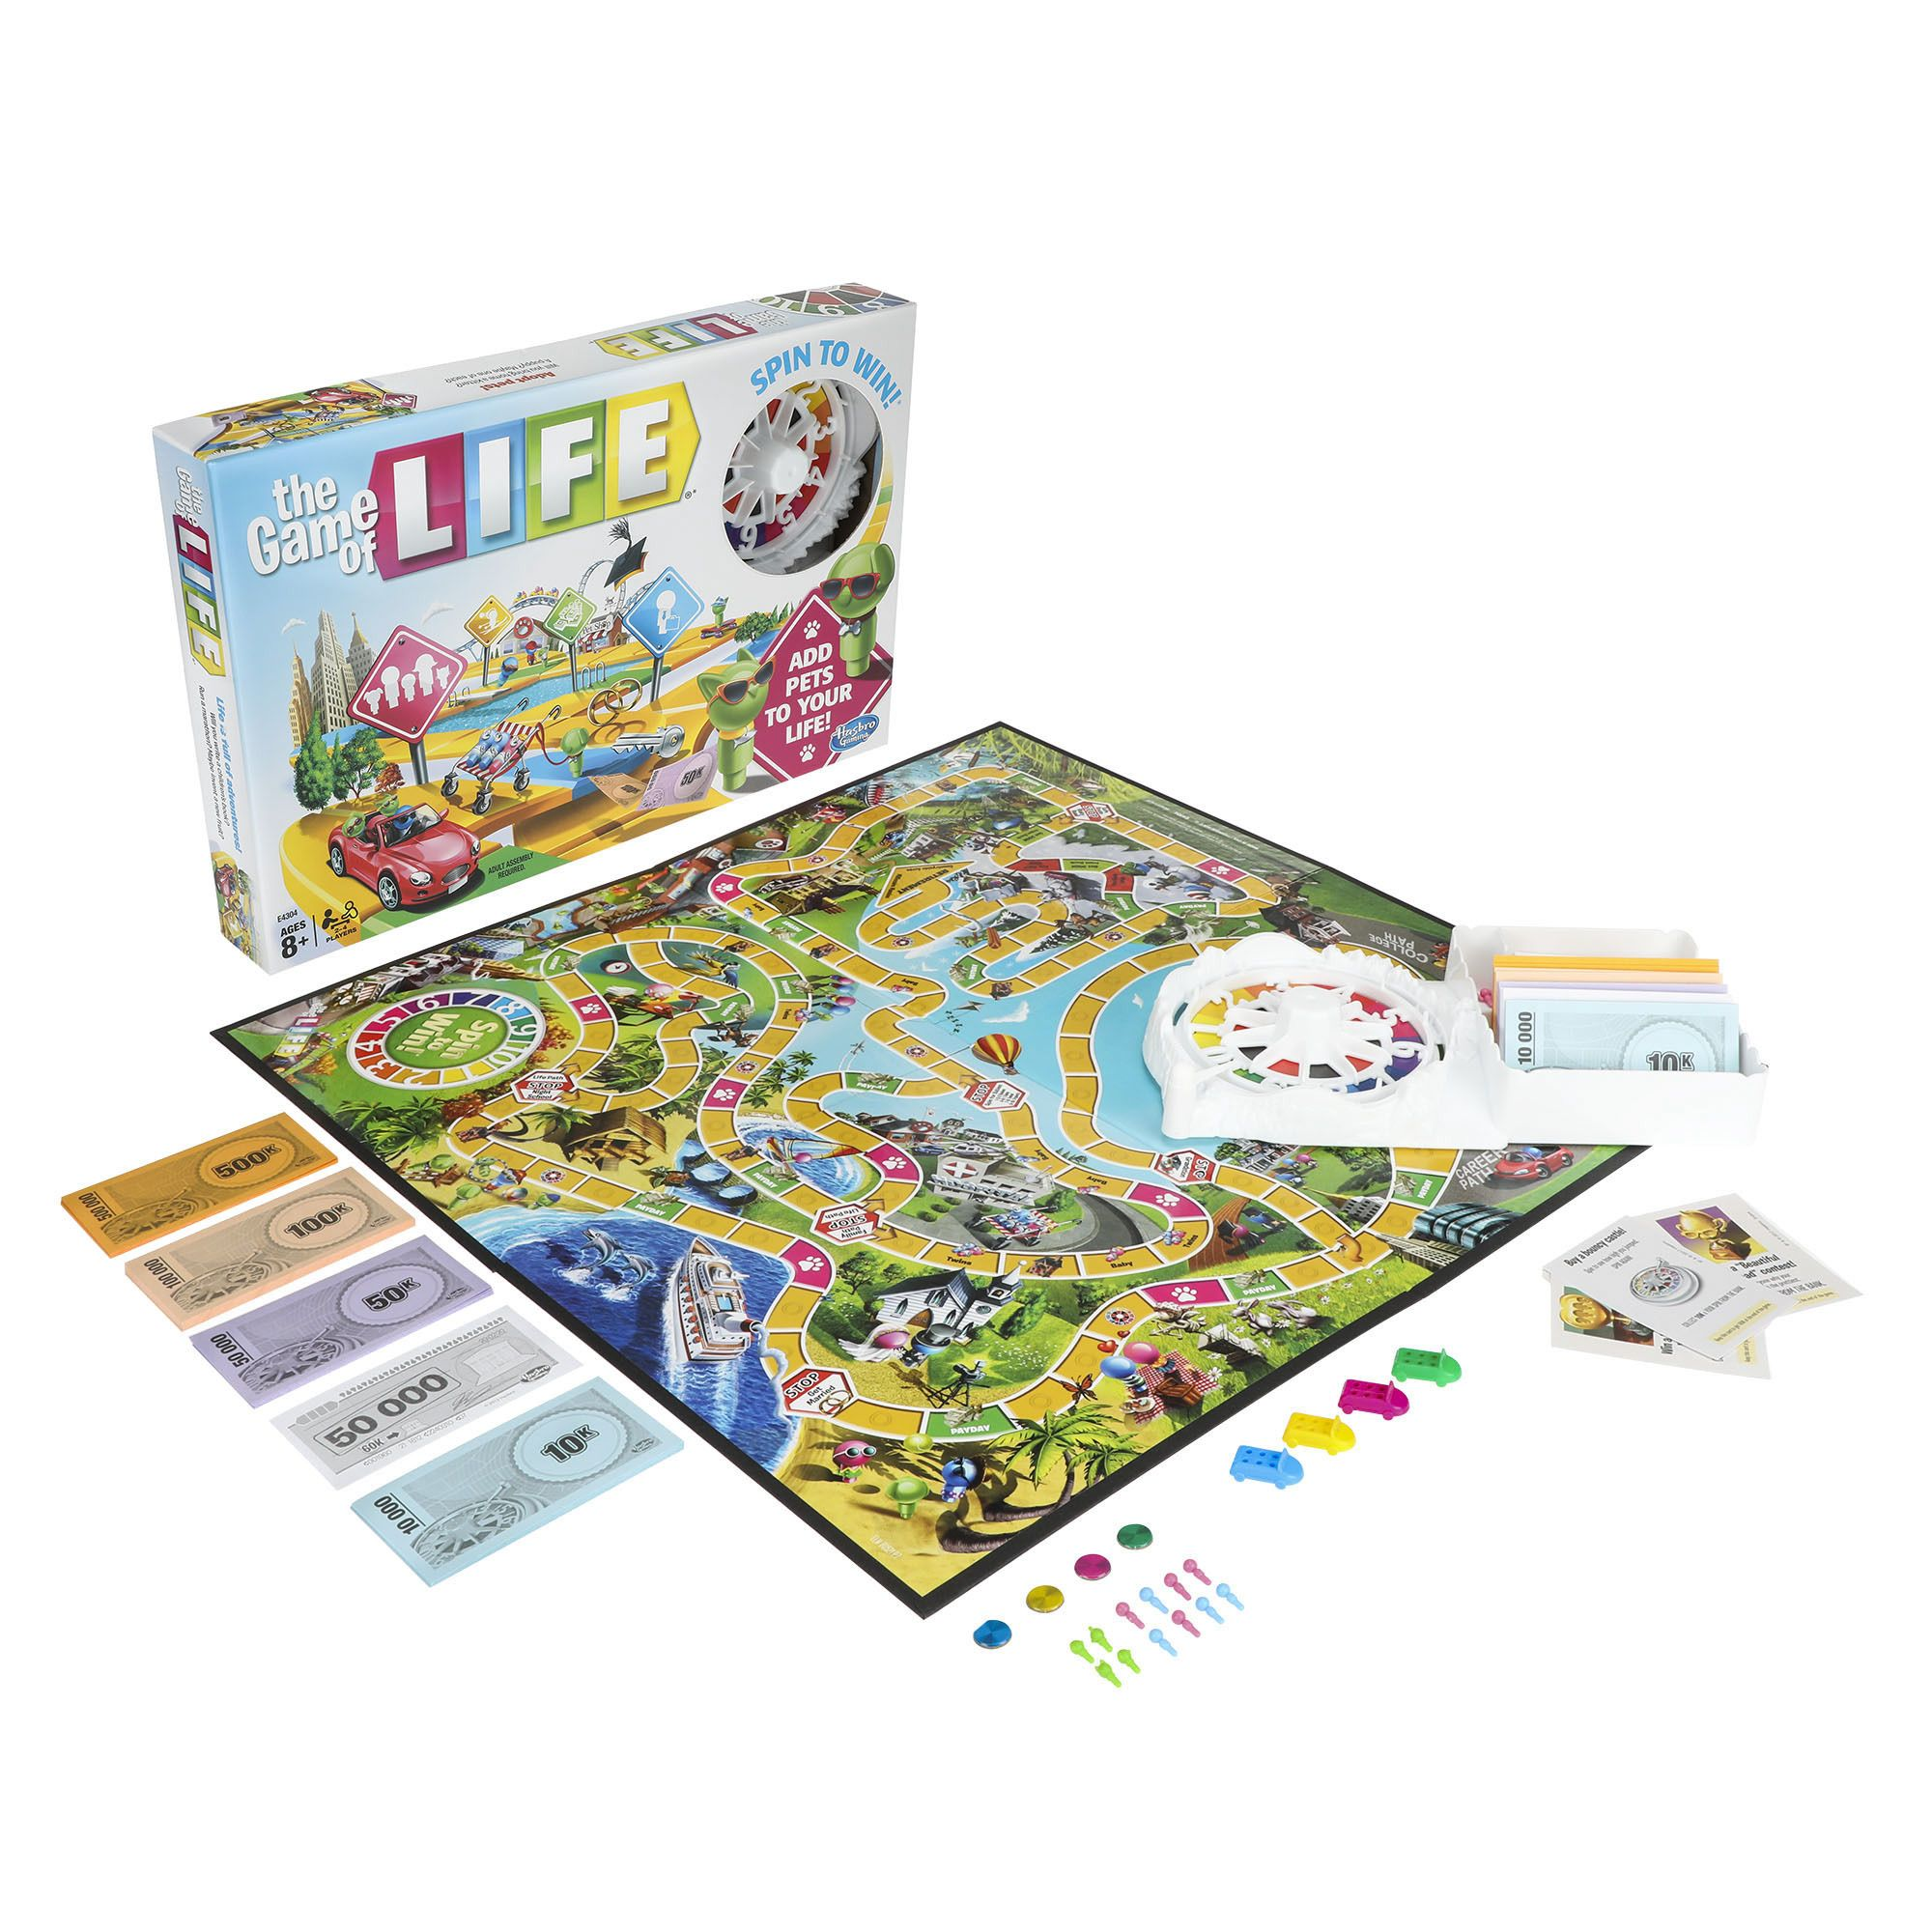 How To Get The Game Of Life For Free